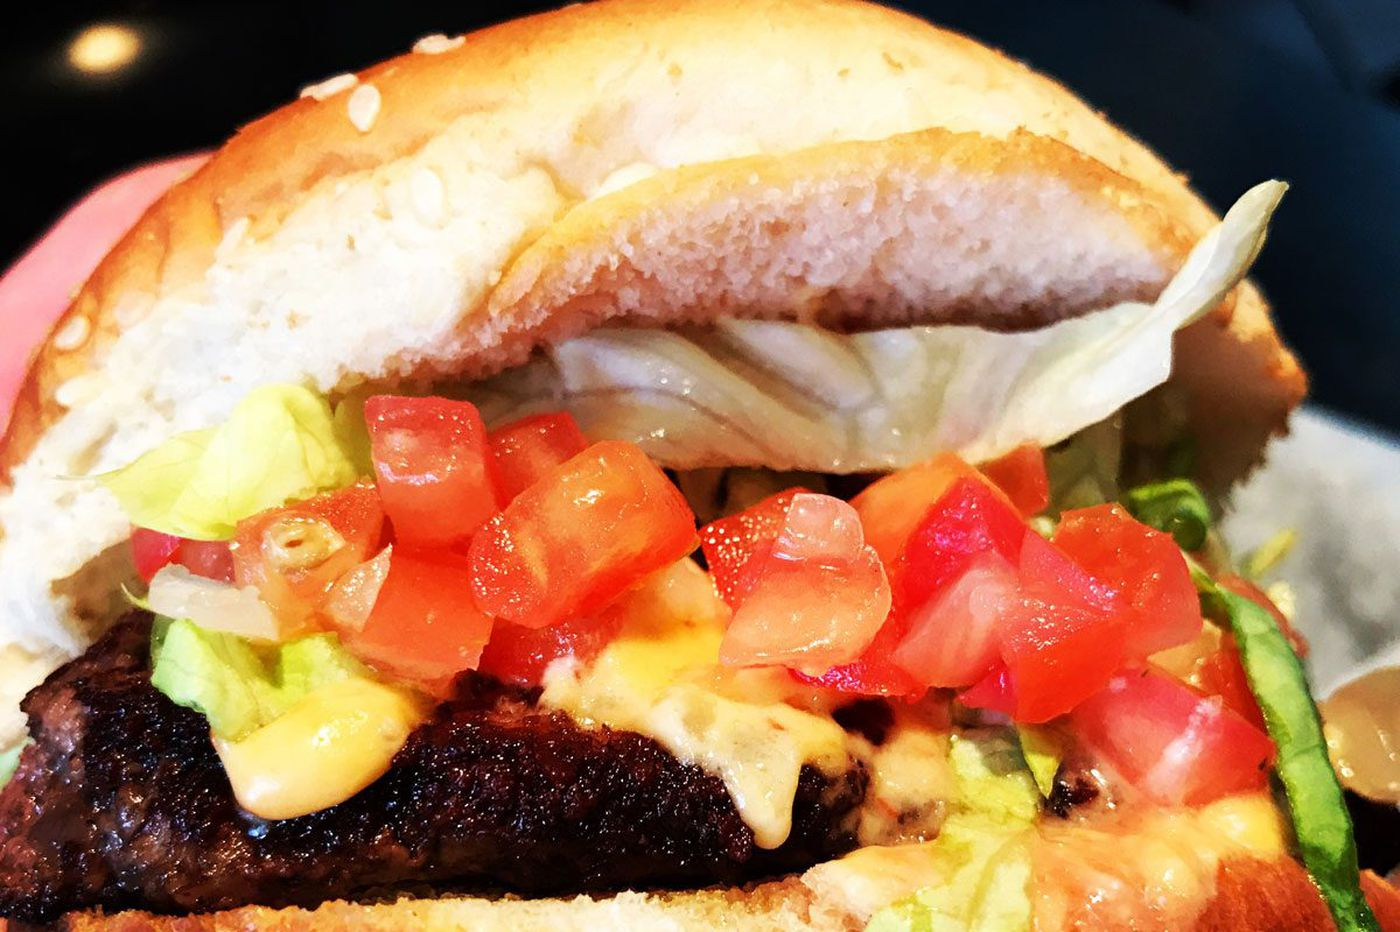 Free burgers at Napoleon Burger's opening in Manayunk